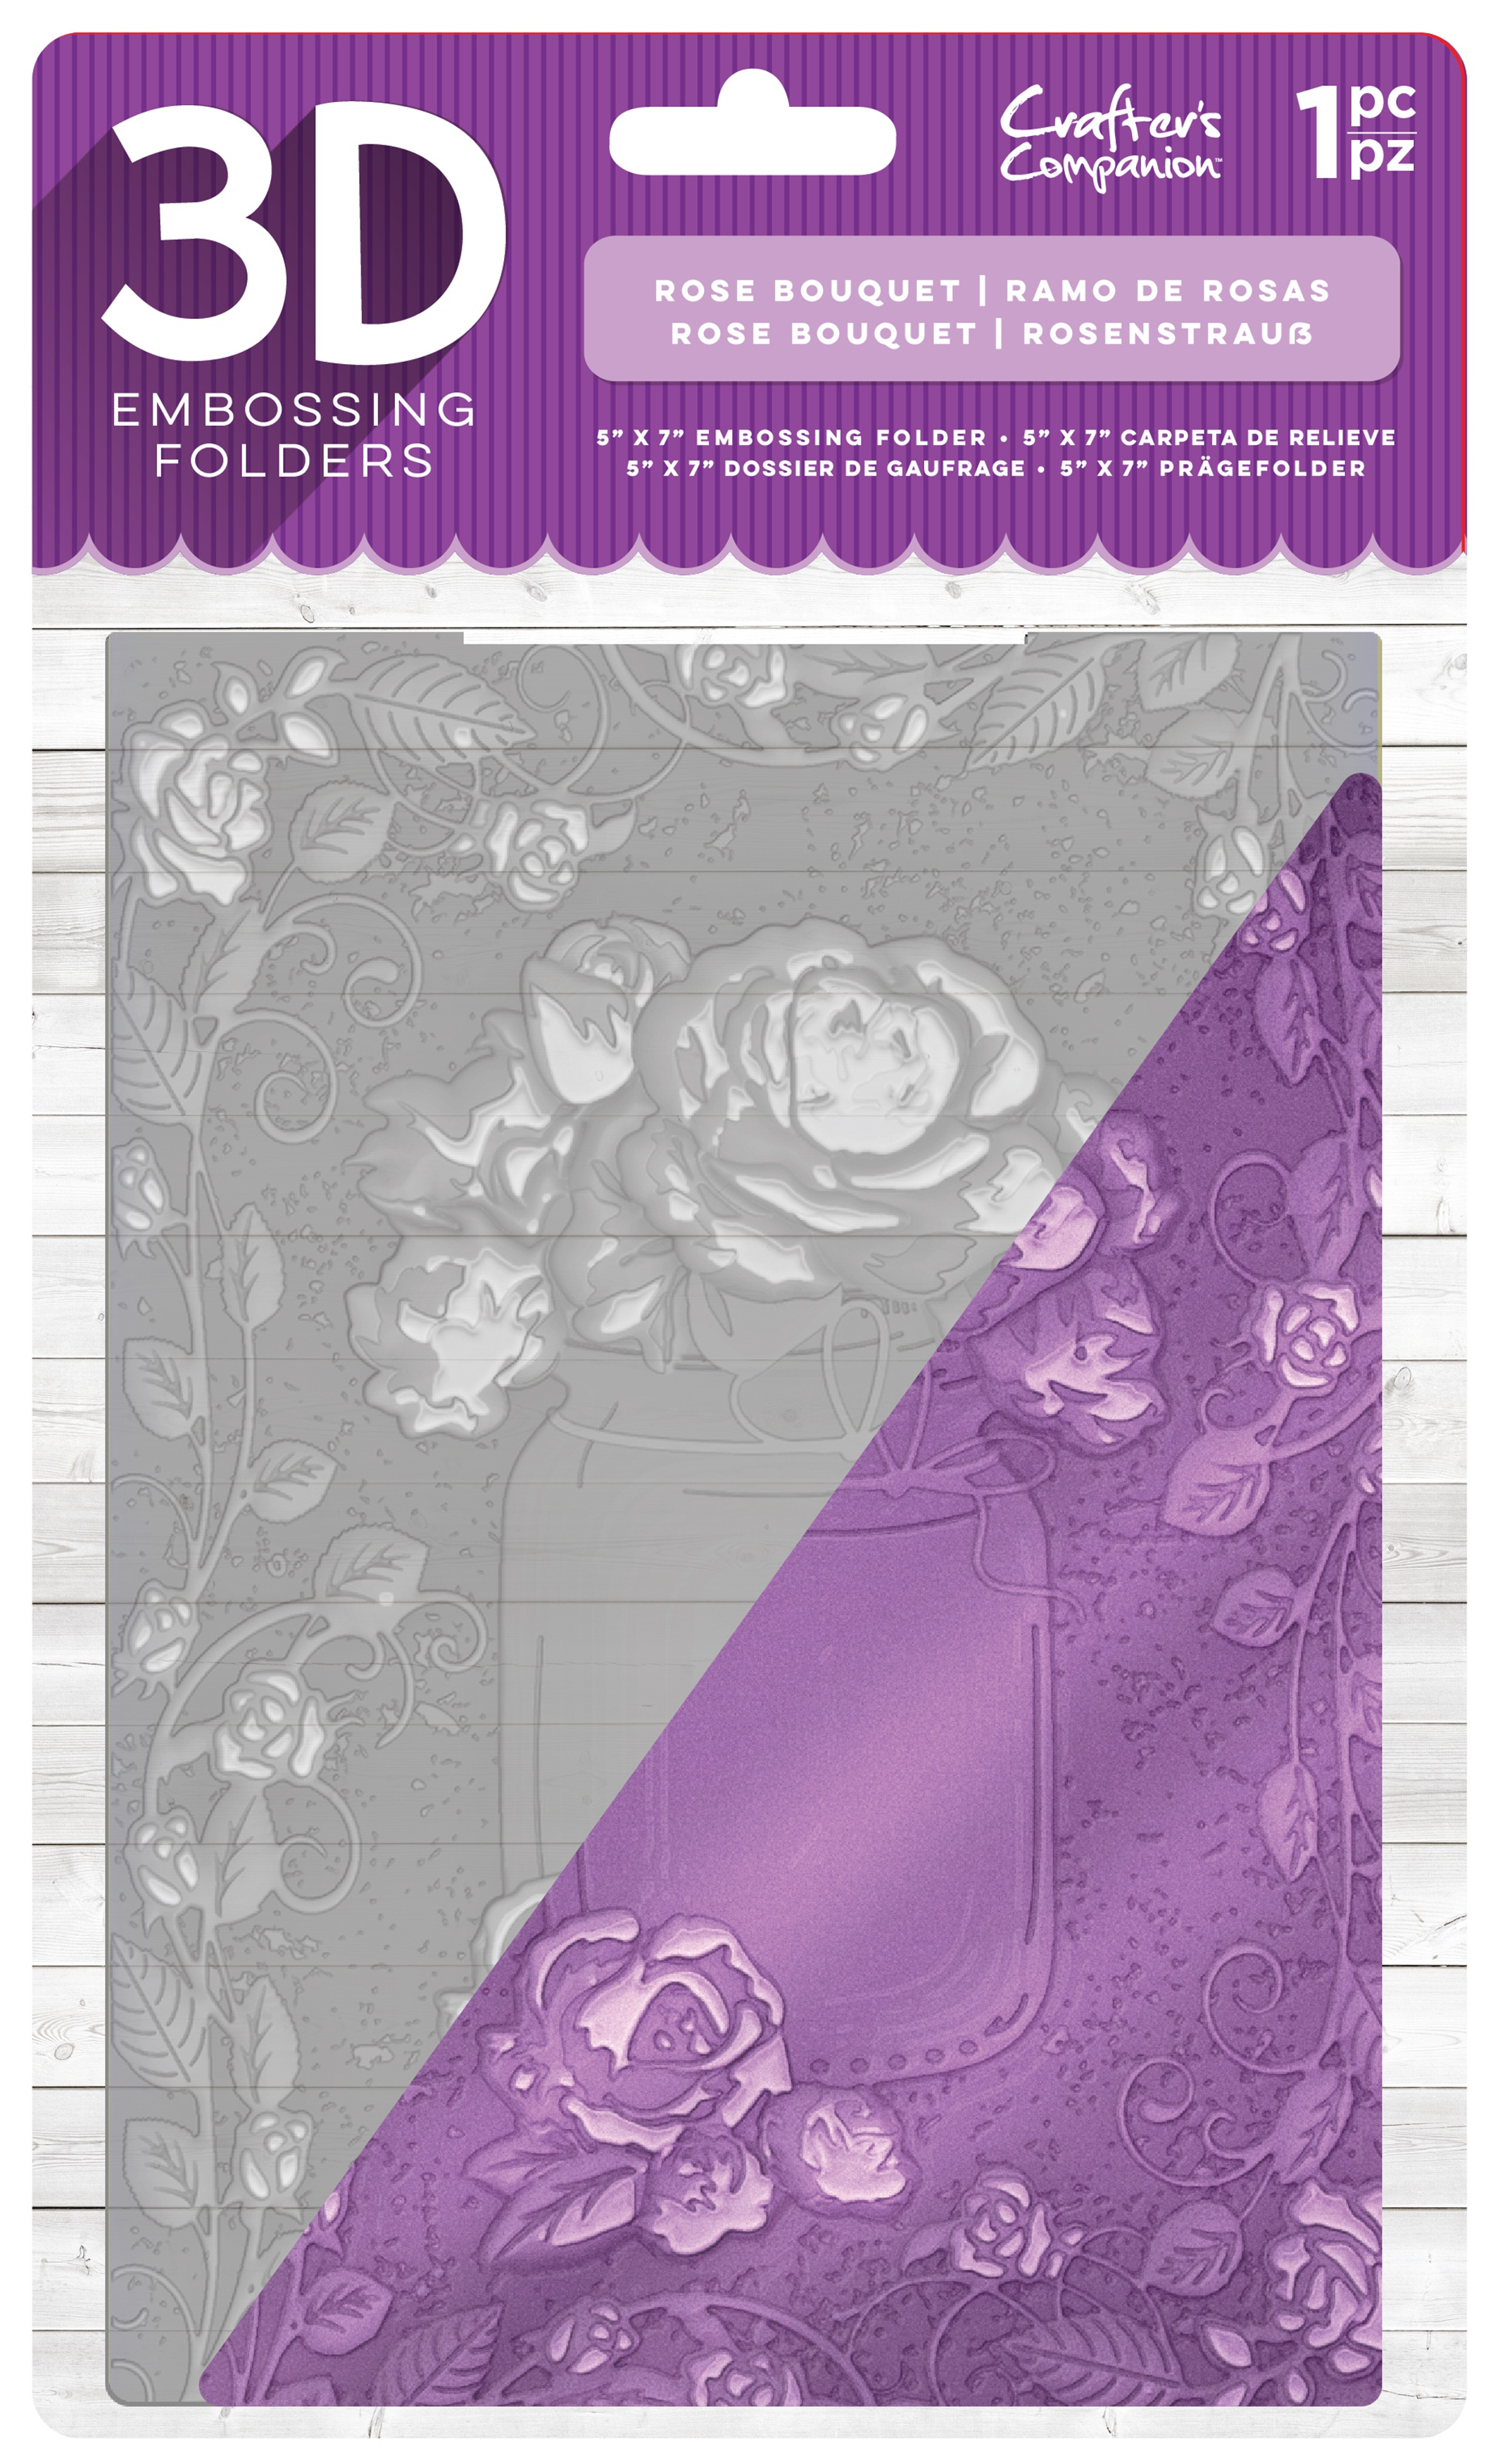 Crafter's Companion 3D Embossing Folder 5X7-Rose Bouquet